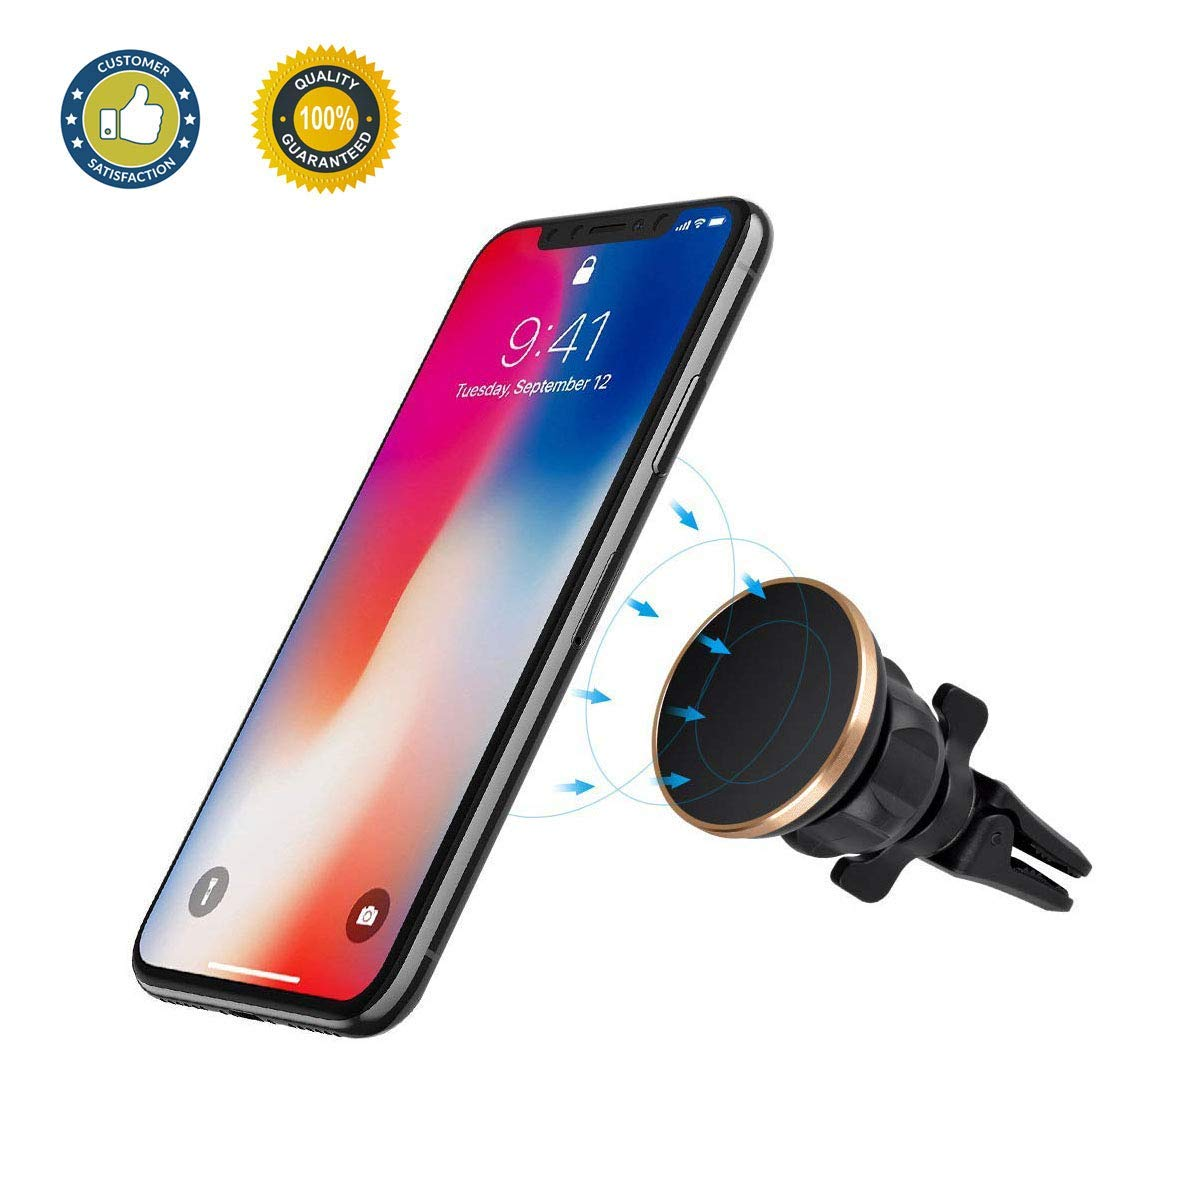 Magnetic Phone Car Mount Universal Magnet Air Vent Phone Holder for Car 360°Adjustable Car Phone Mount Compatiable for iPhone X/8/7/7P/6/6P/5,Samsung Note Galaxy